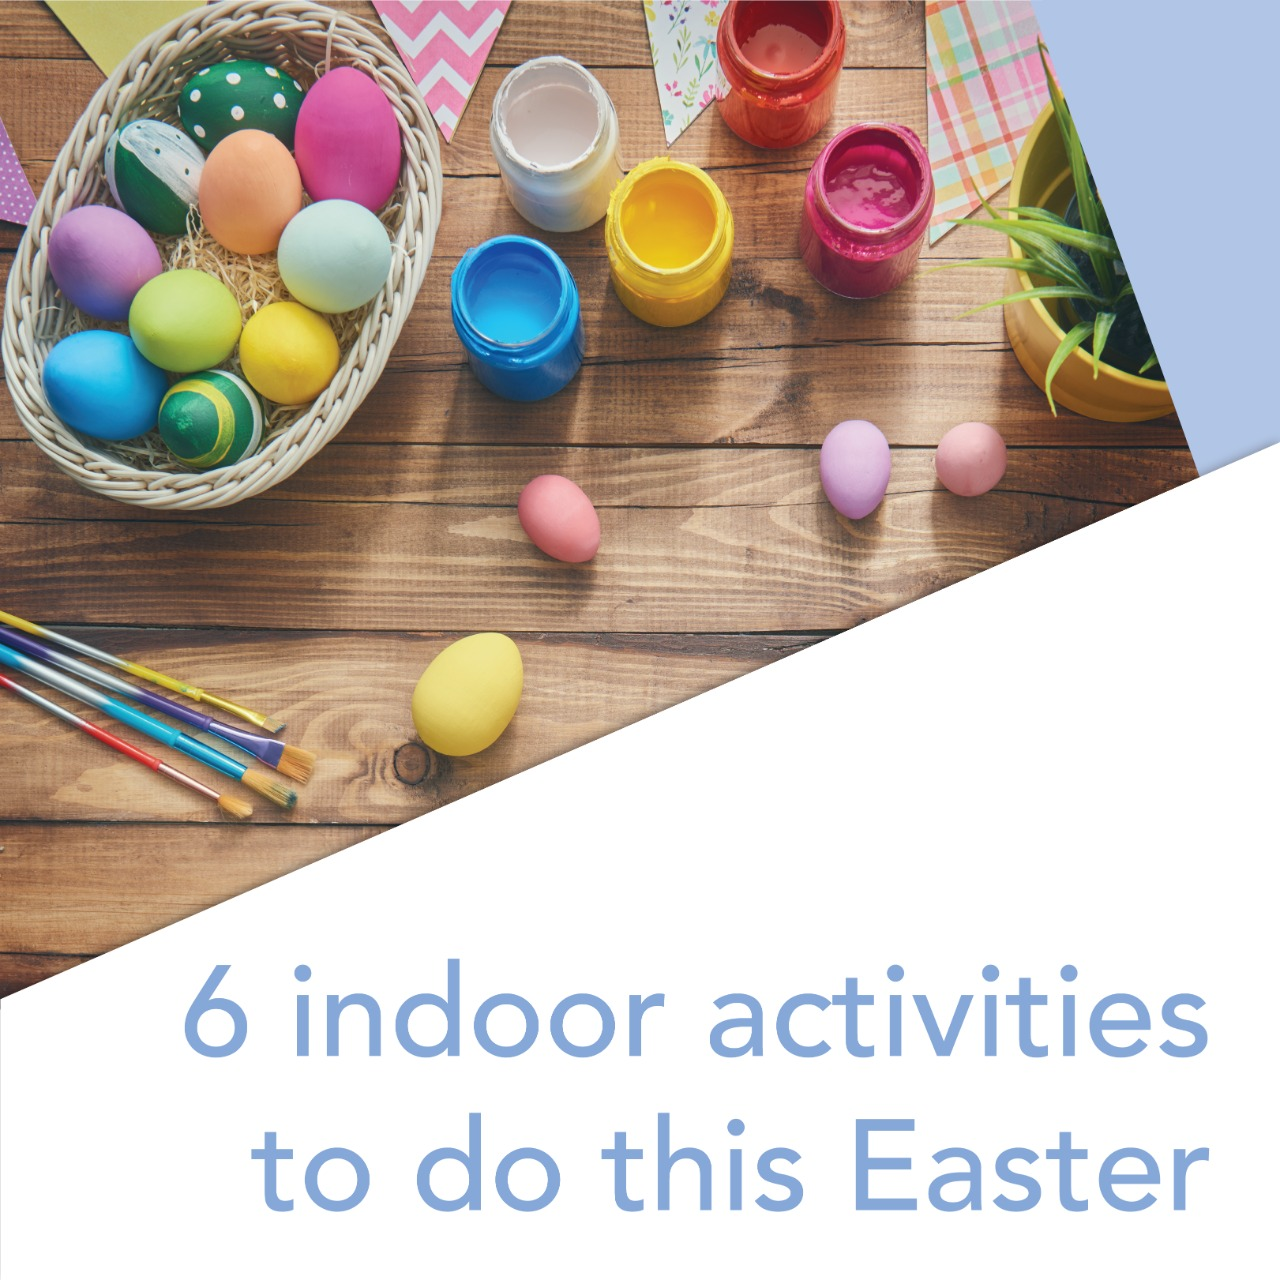 Allsopp and Allsopp 6 indoor activities to do this Easter Cover